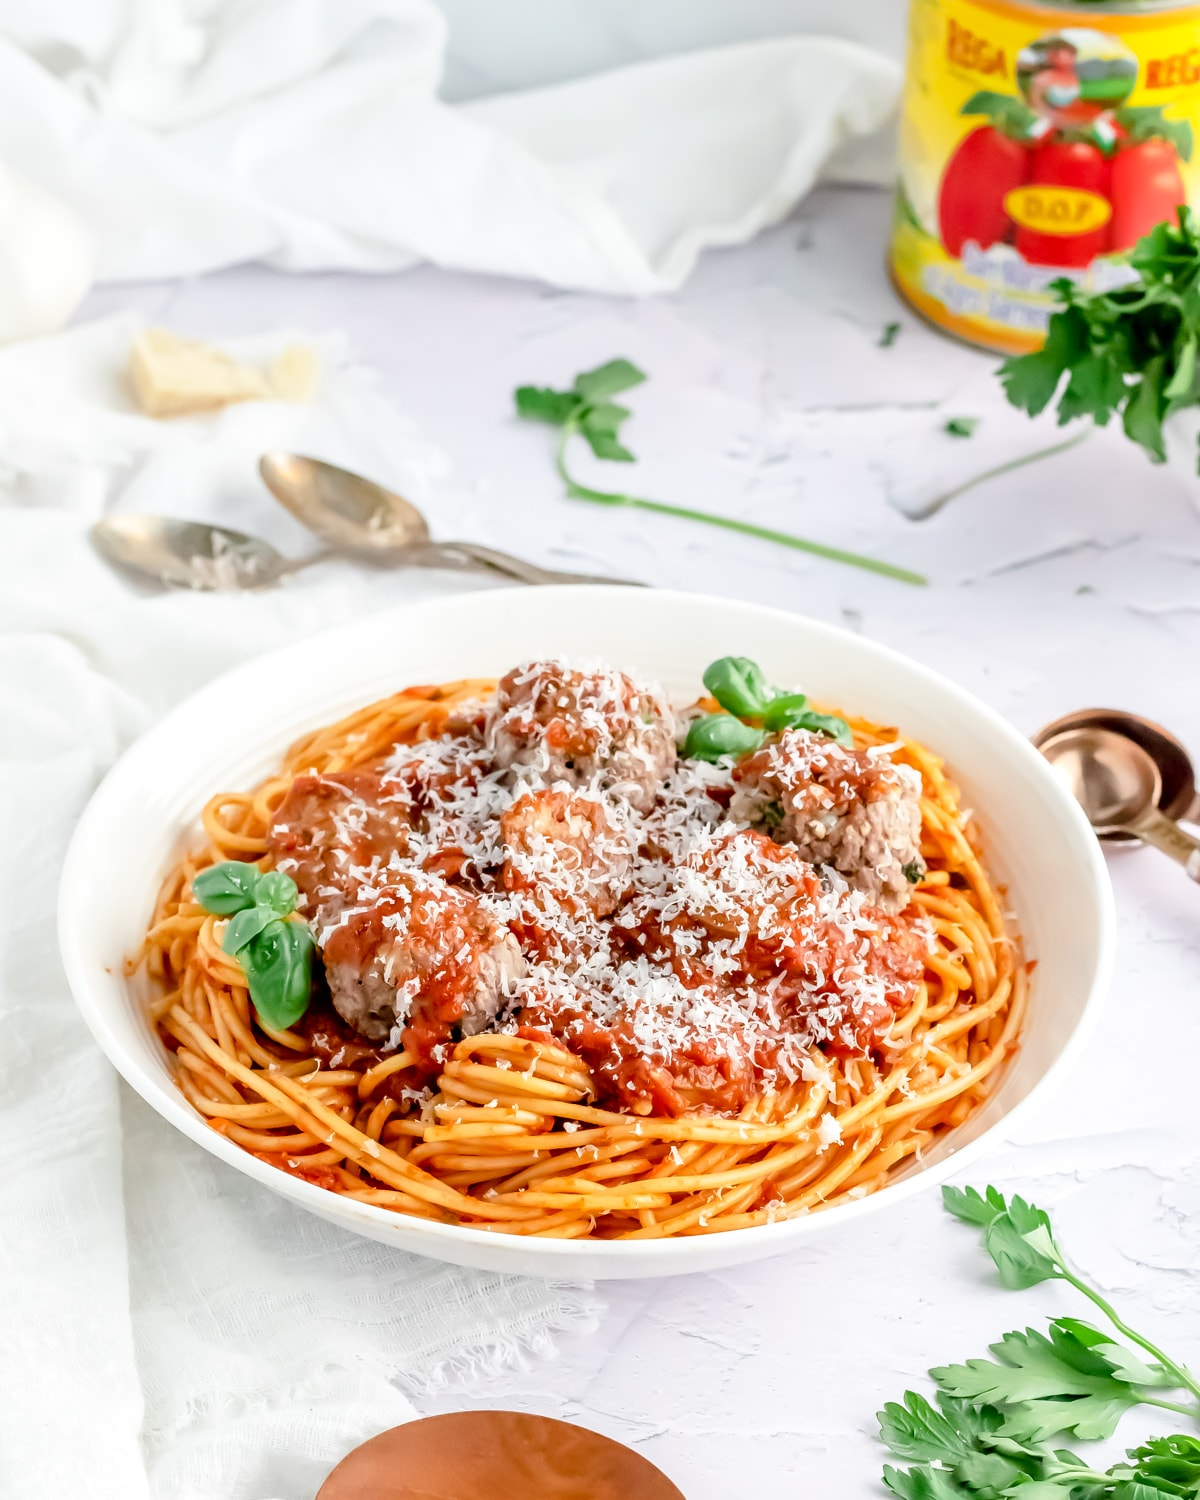 a serving bowl of spaghetti and meatballs